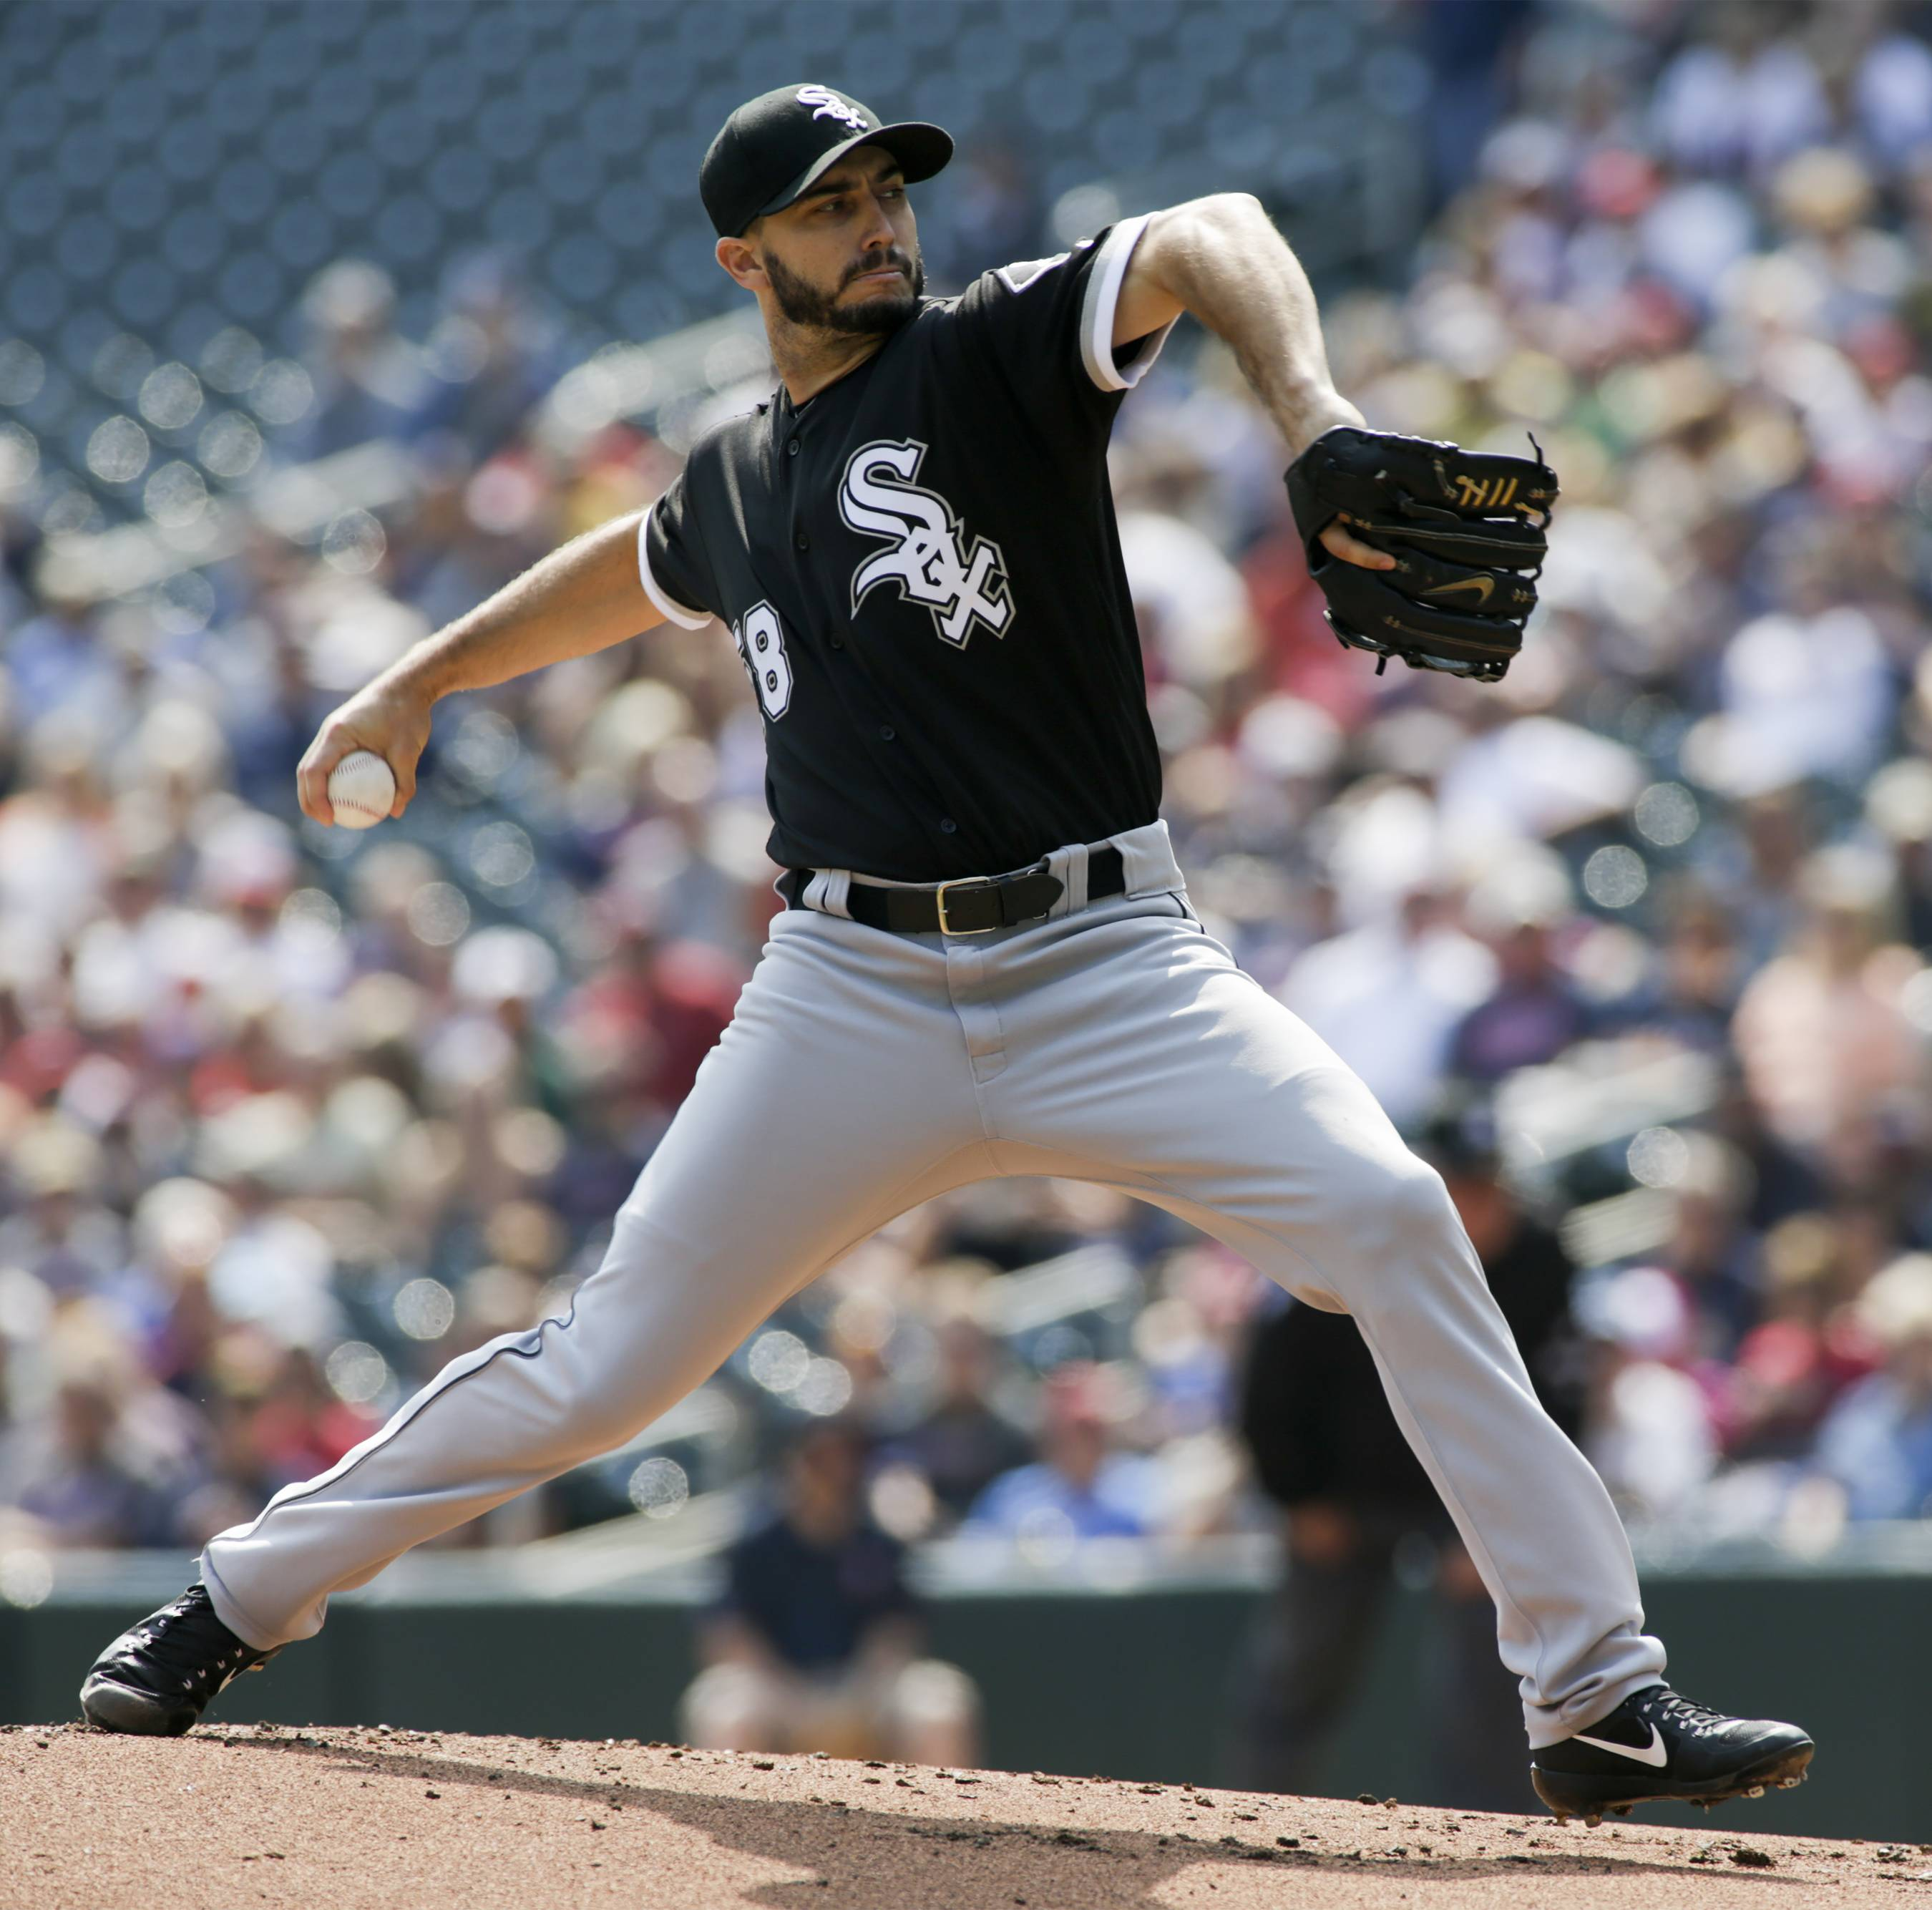 Pitcher Gonzalez 'pumped' to rejoin Chicago White Sox on one-year contract